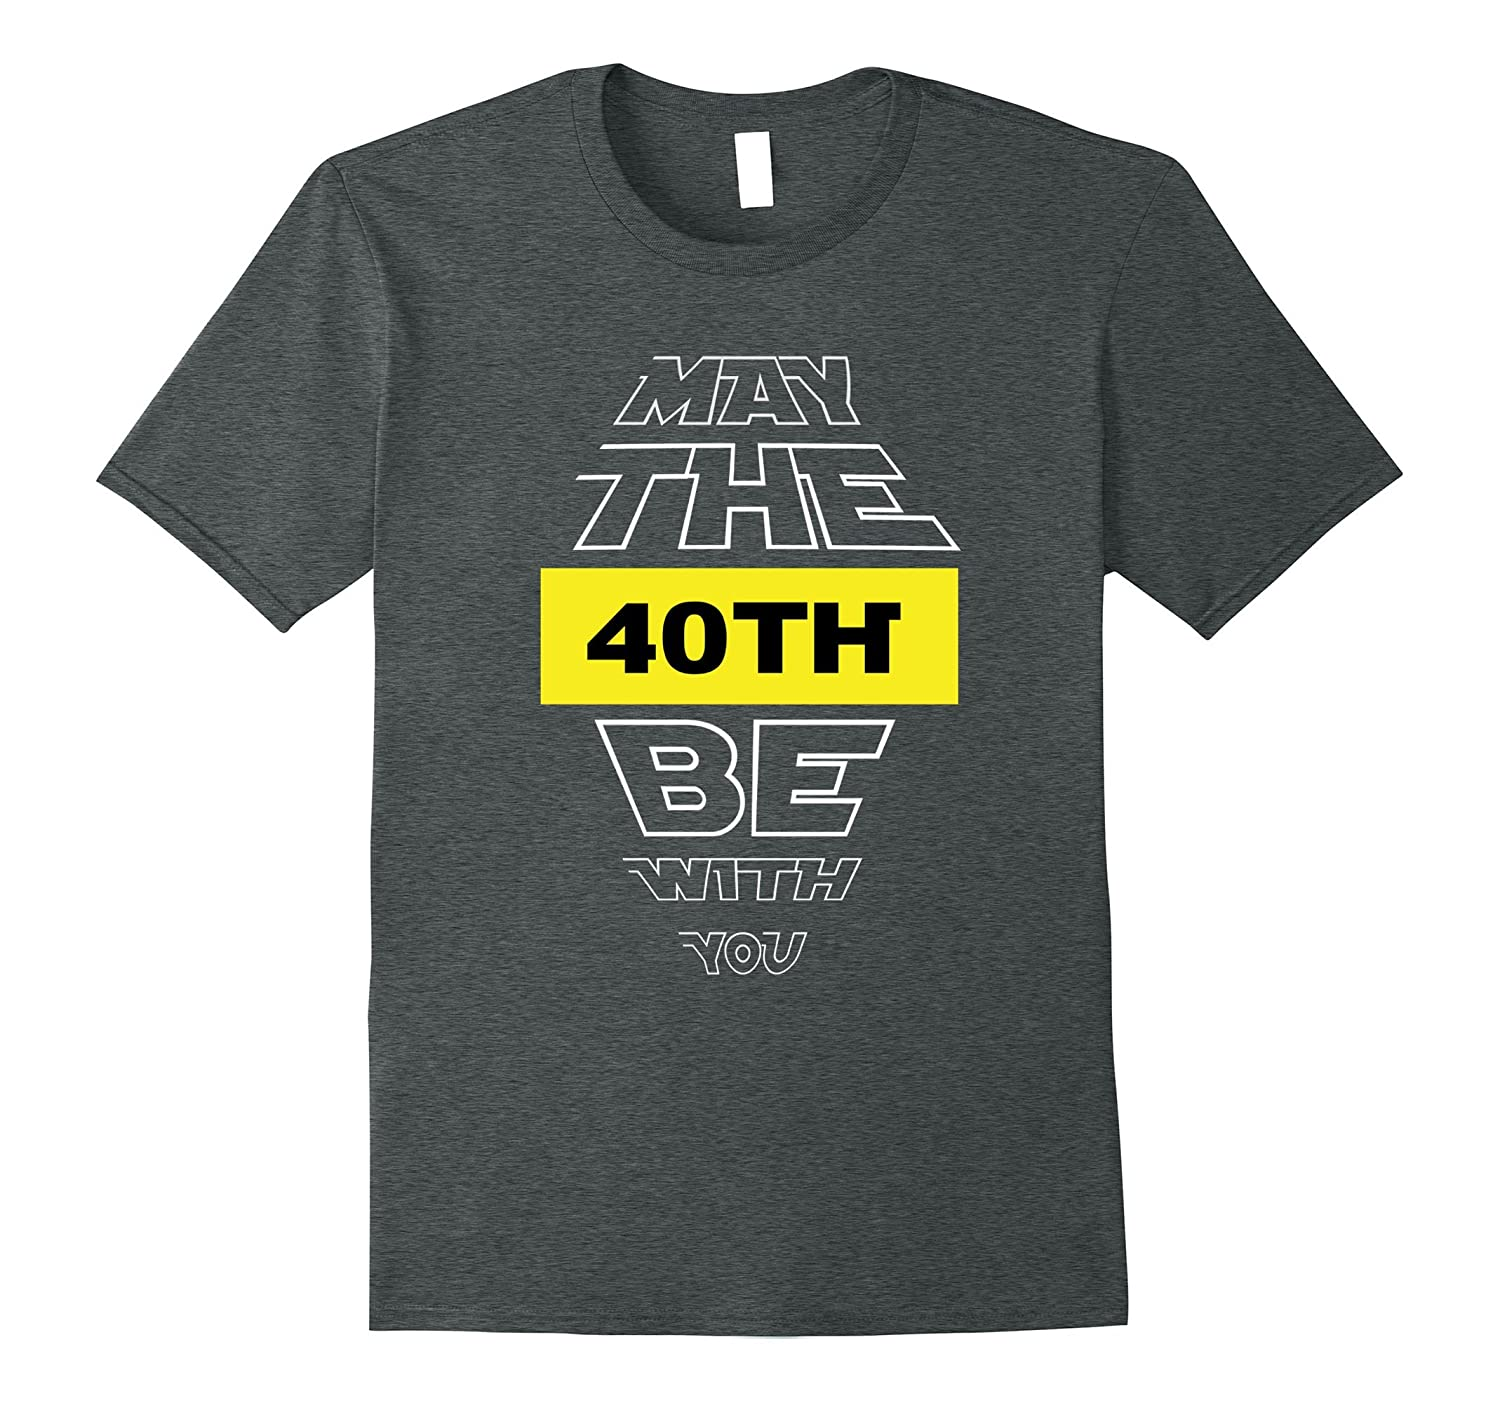 40th Birthday T-Shirt May The 40th Be With You fortieth bday-ah my shirt one gift